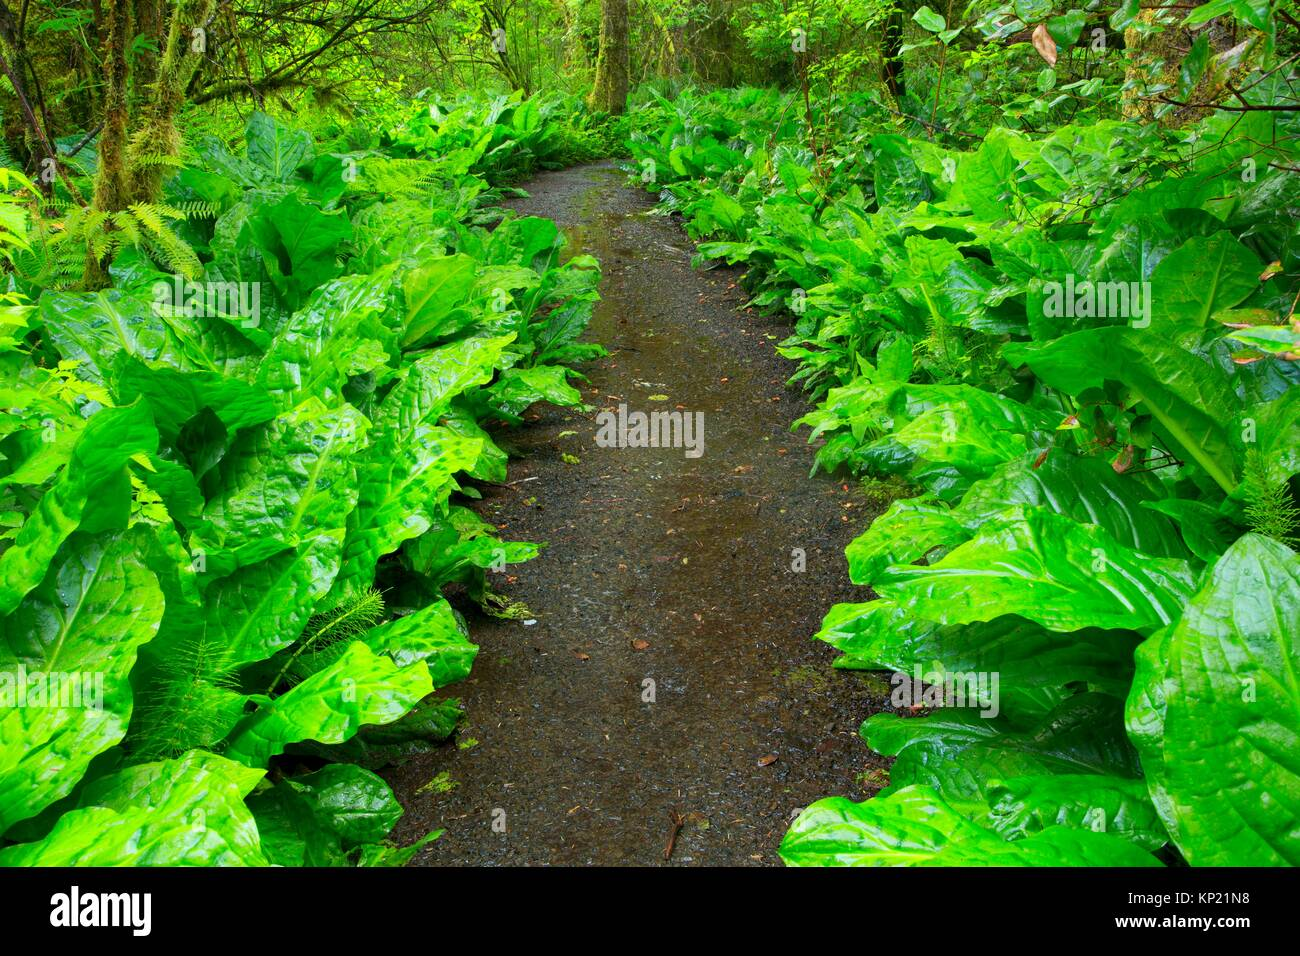 Spencer Creek Trail, Beverly Beach State Park, Oregon. - Stock Image